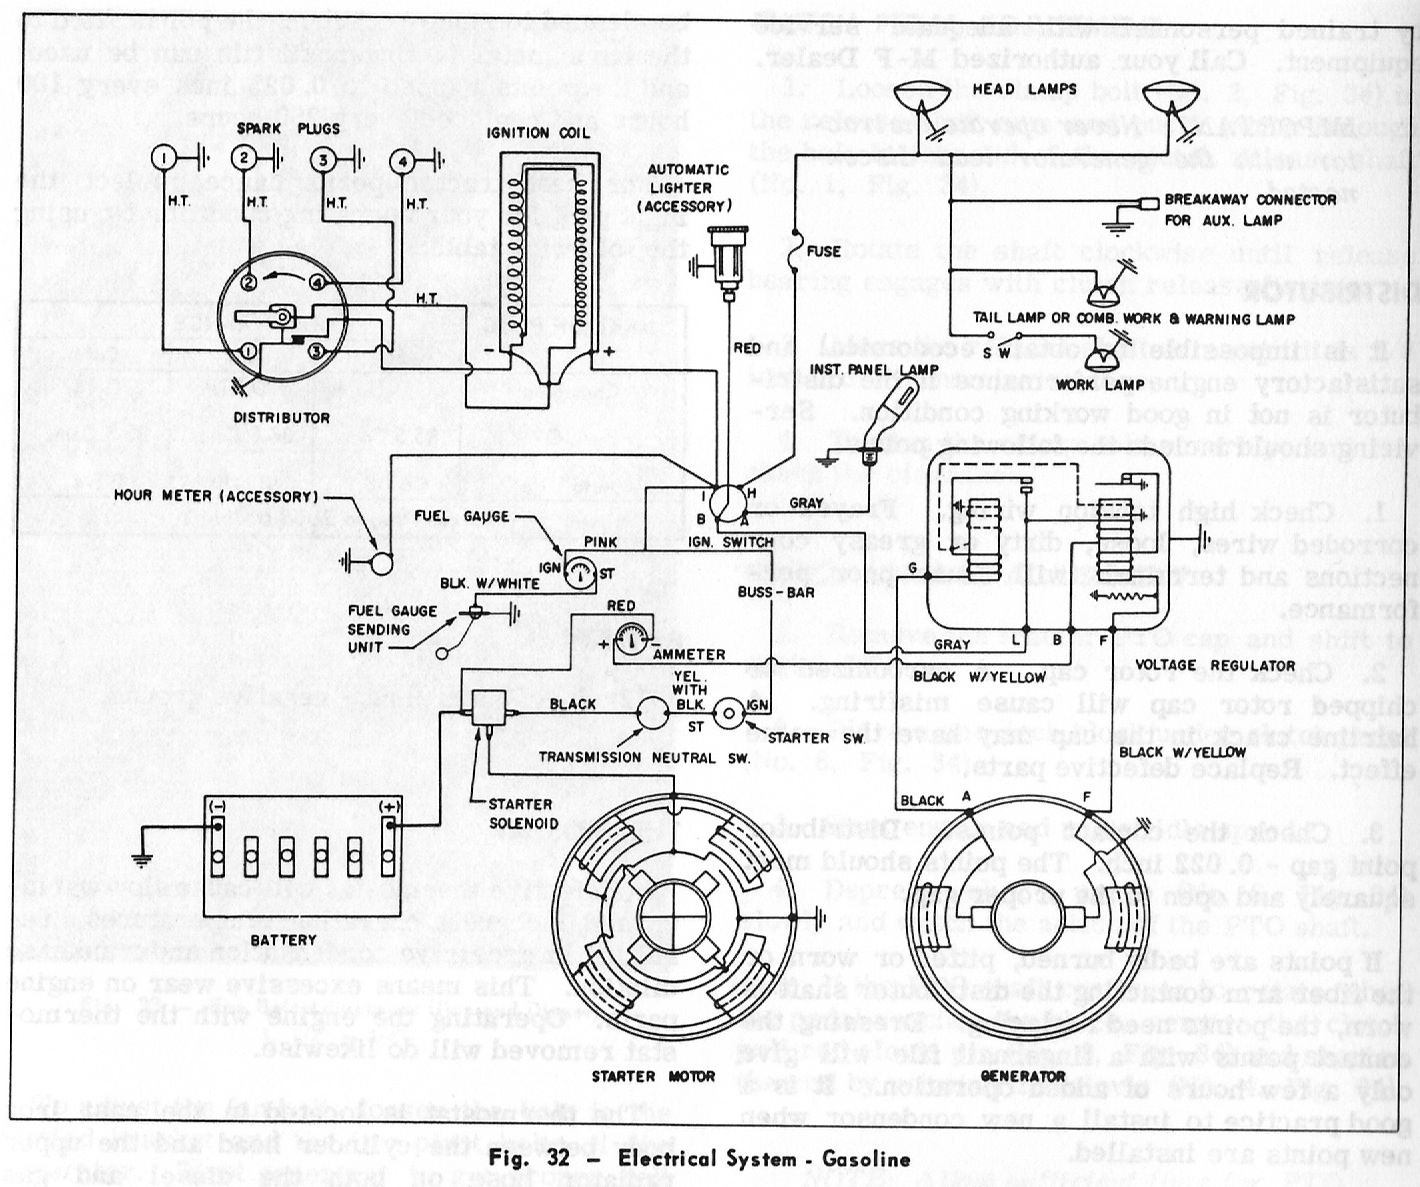 an idiots guide to the massey ferguson 65  gas engine electrical diagram